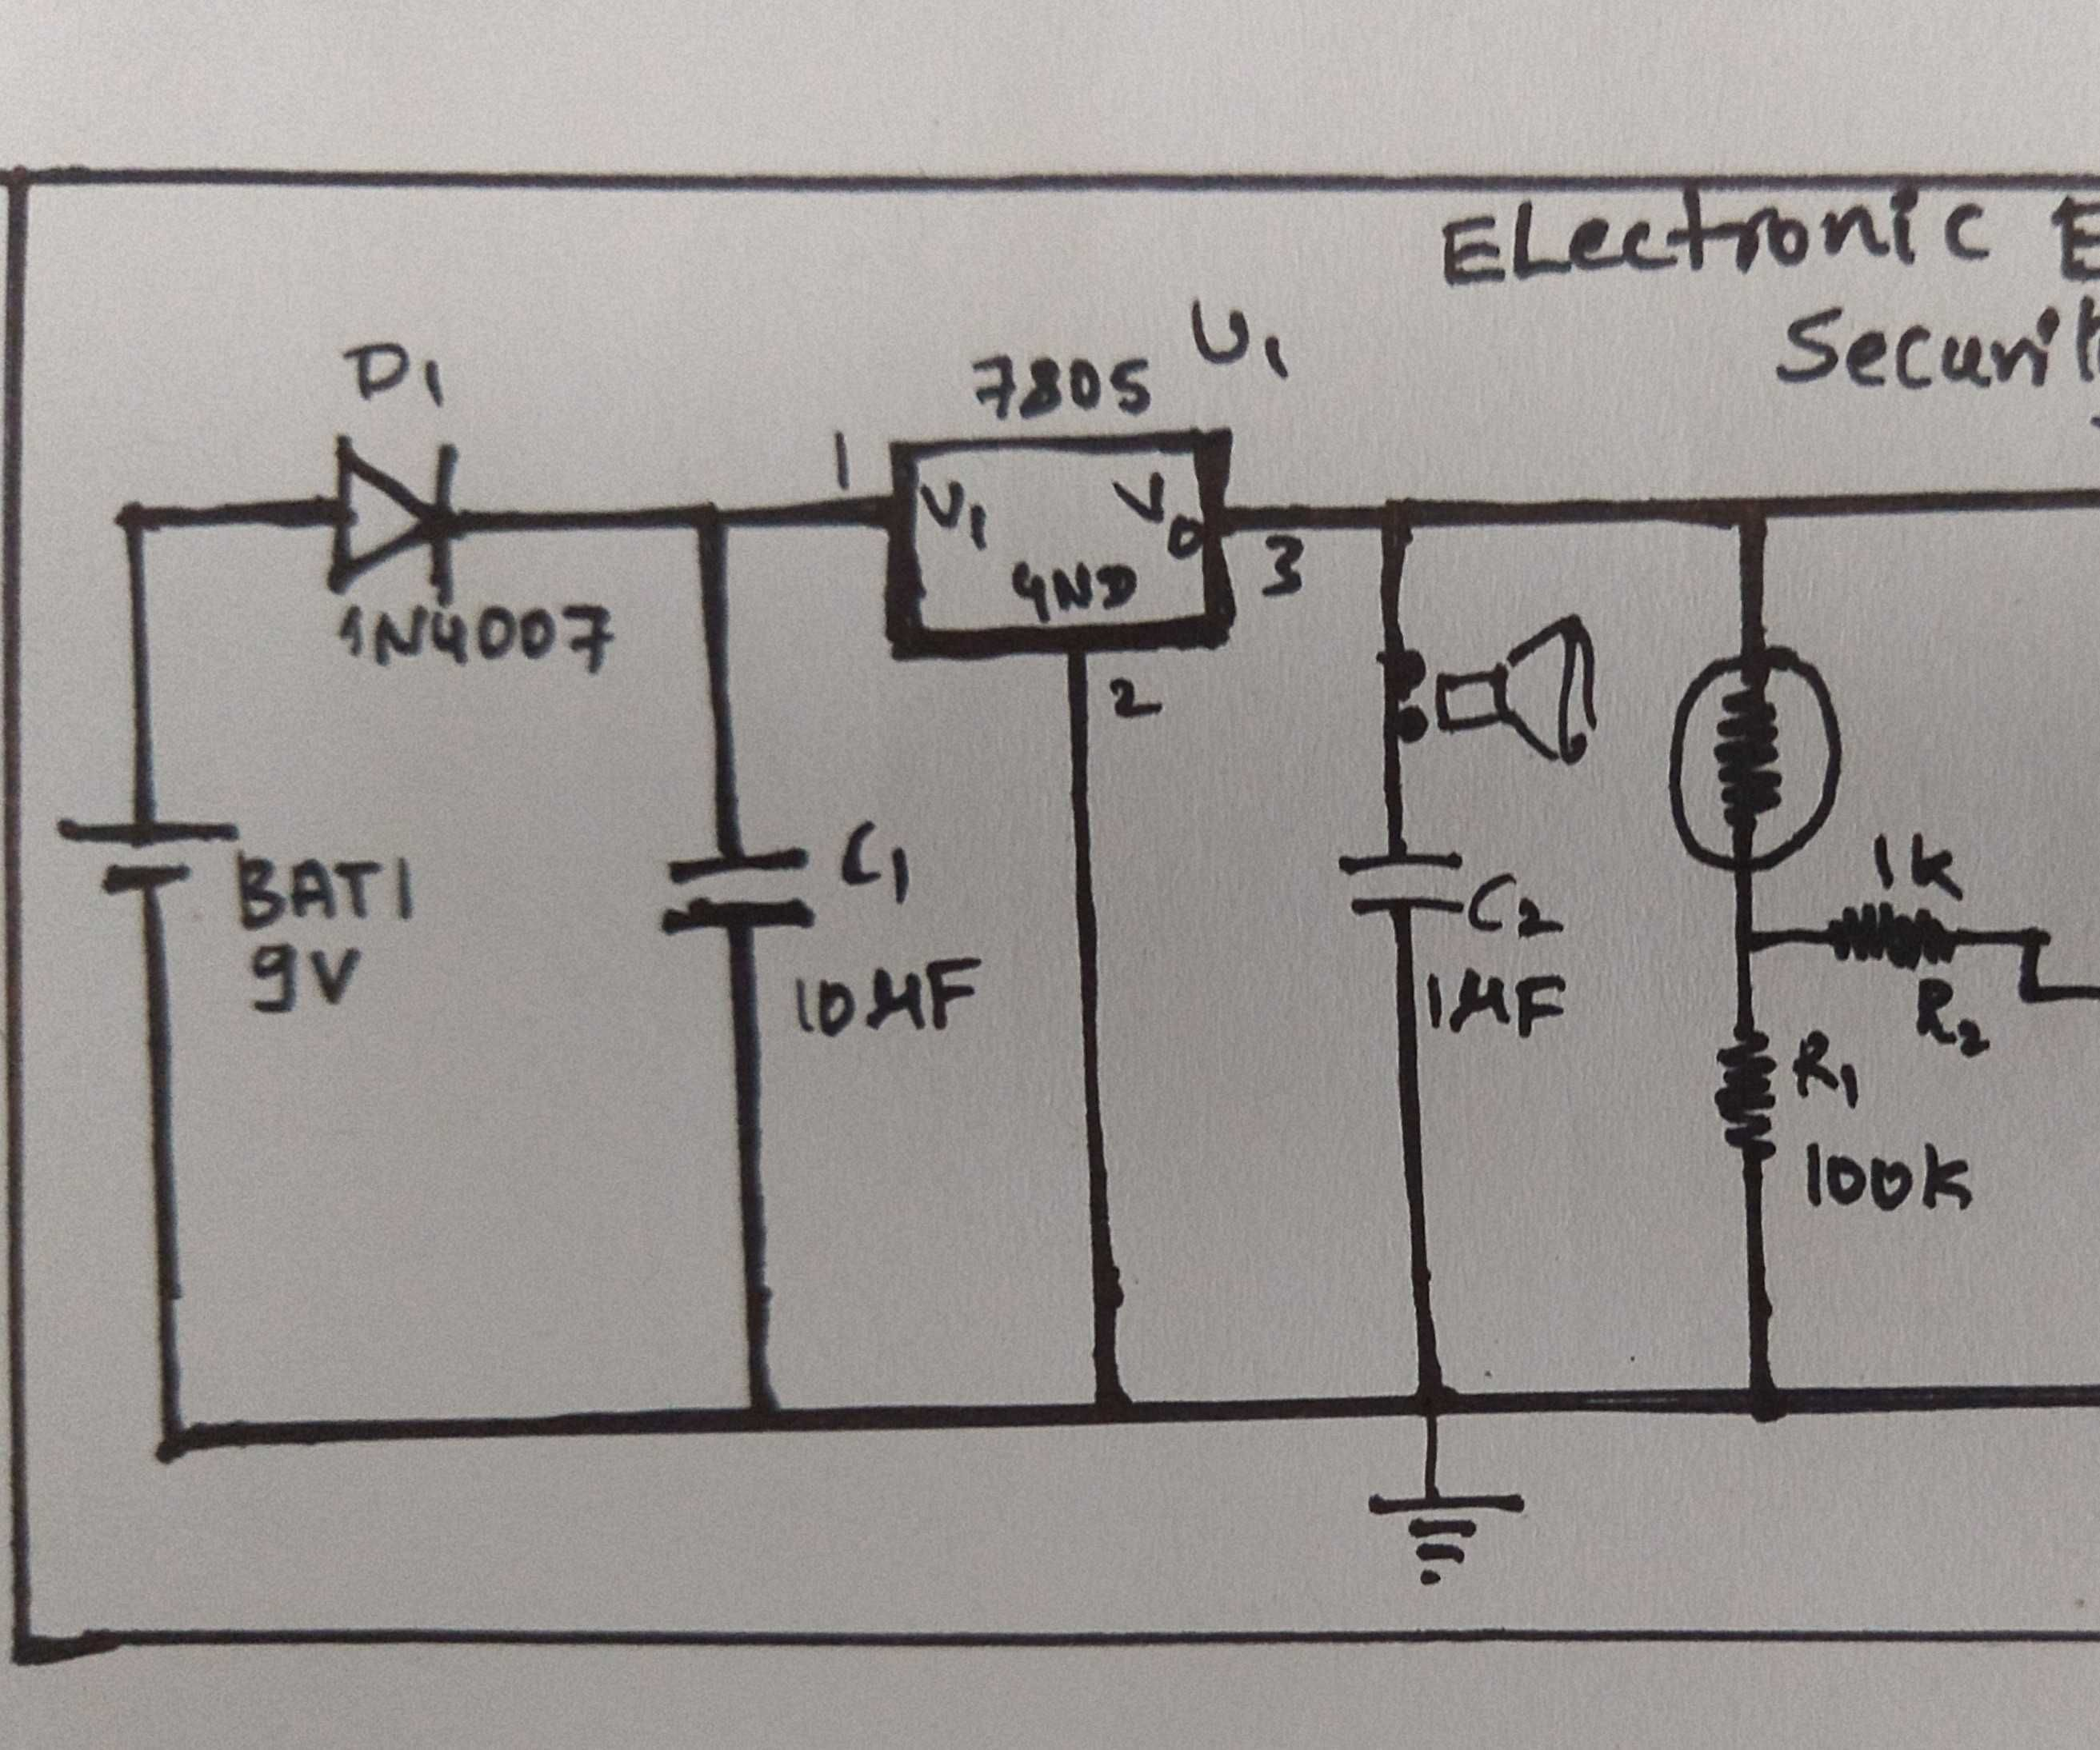 Electronic Eye Controlled Security System